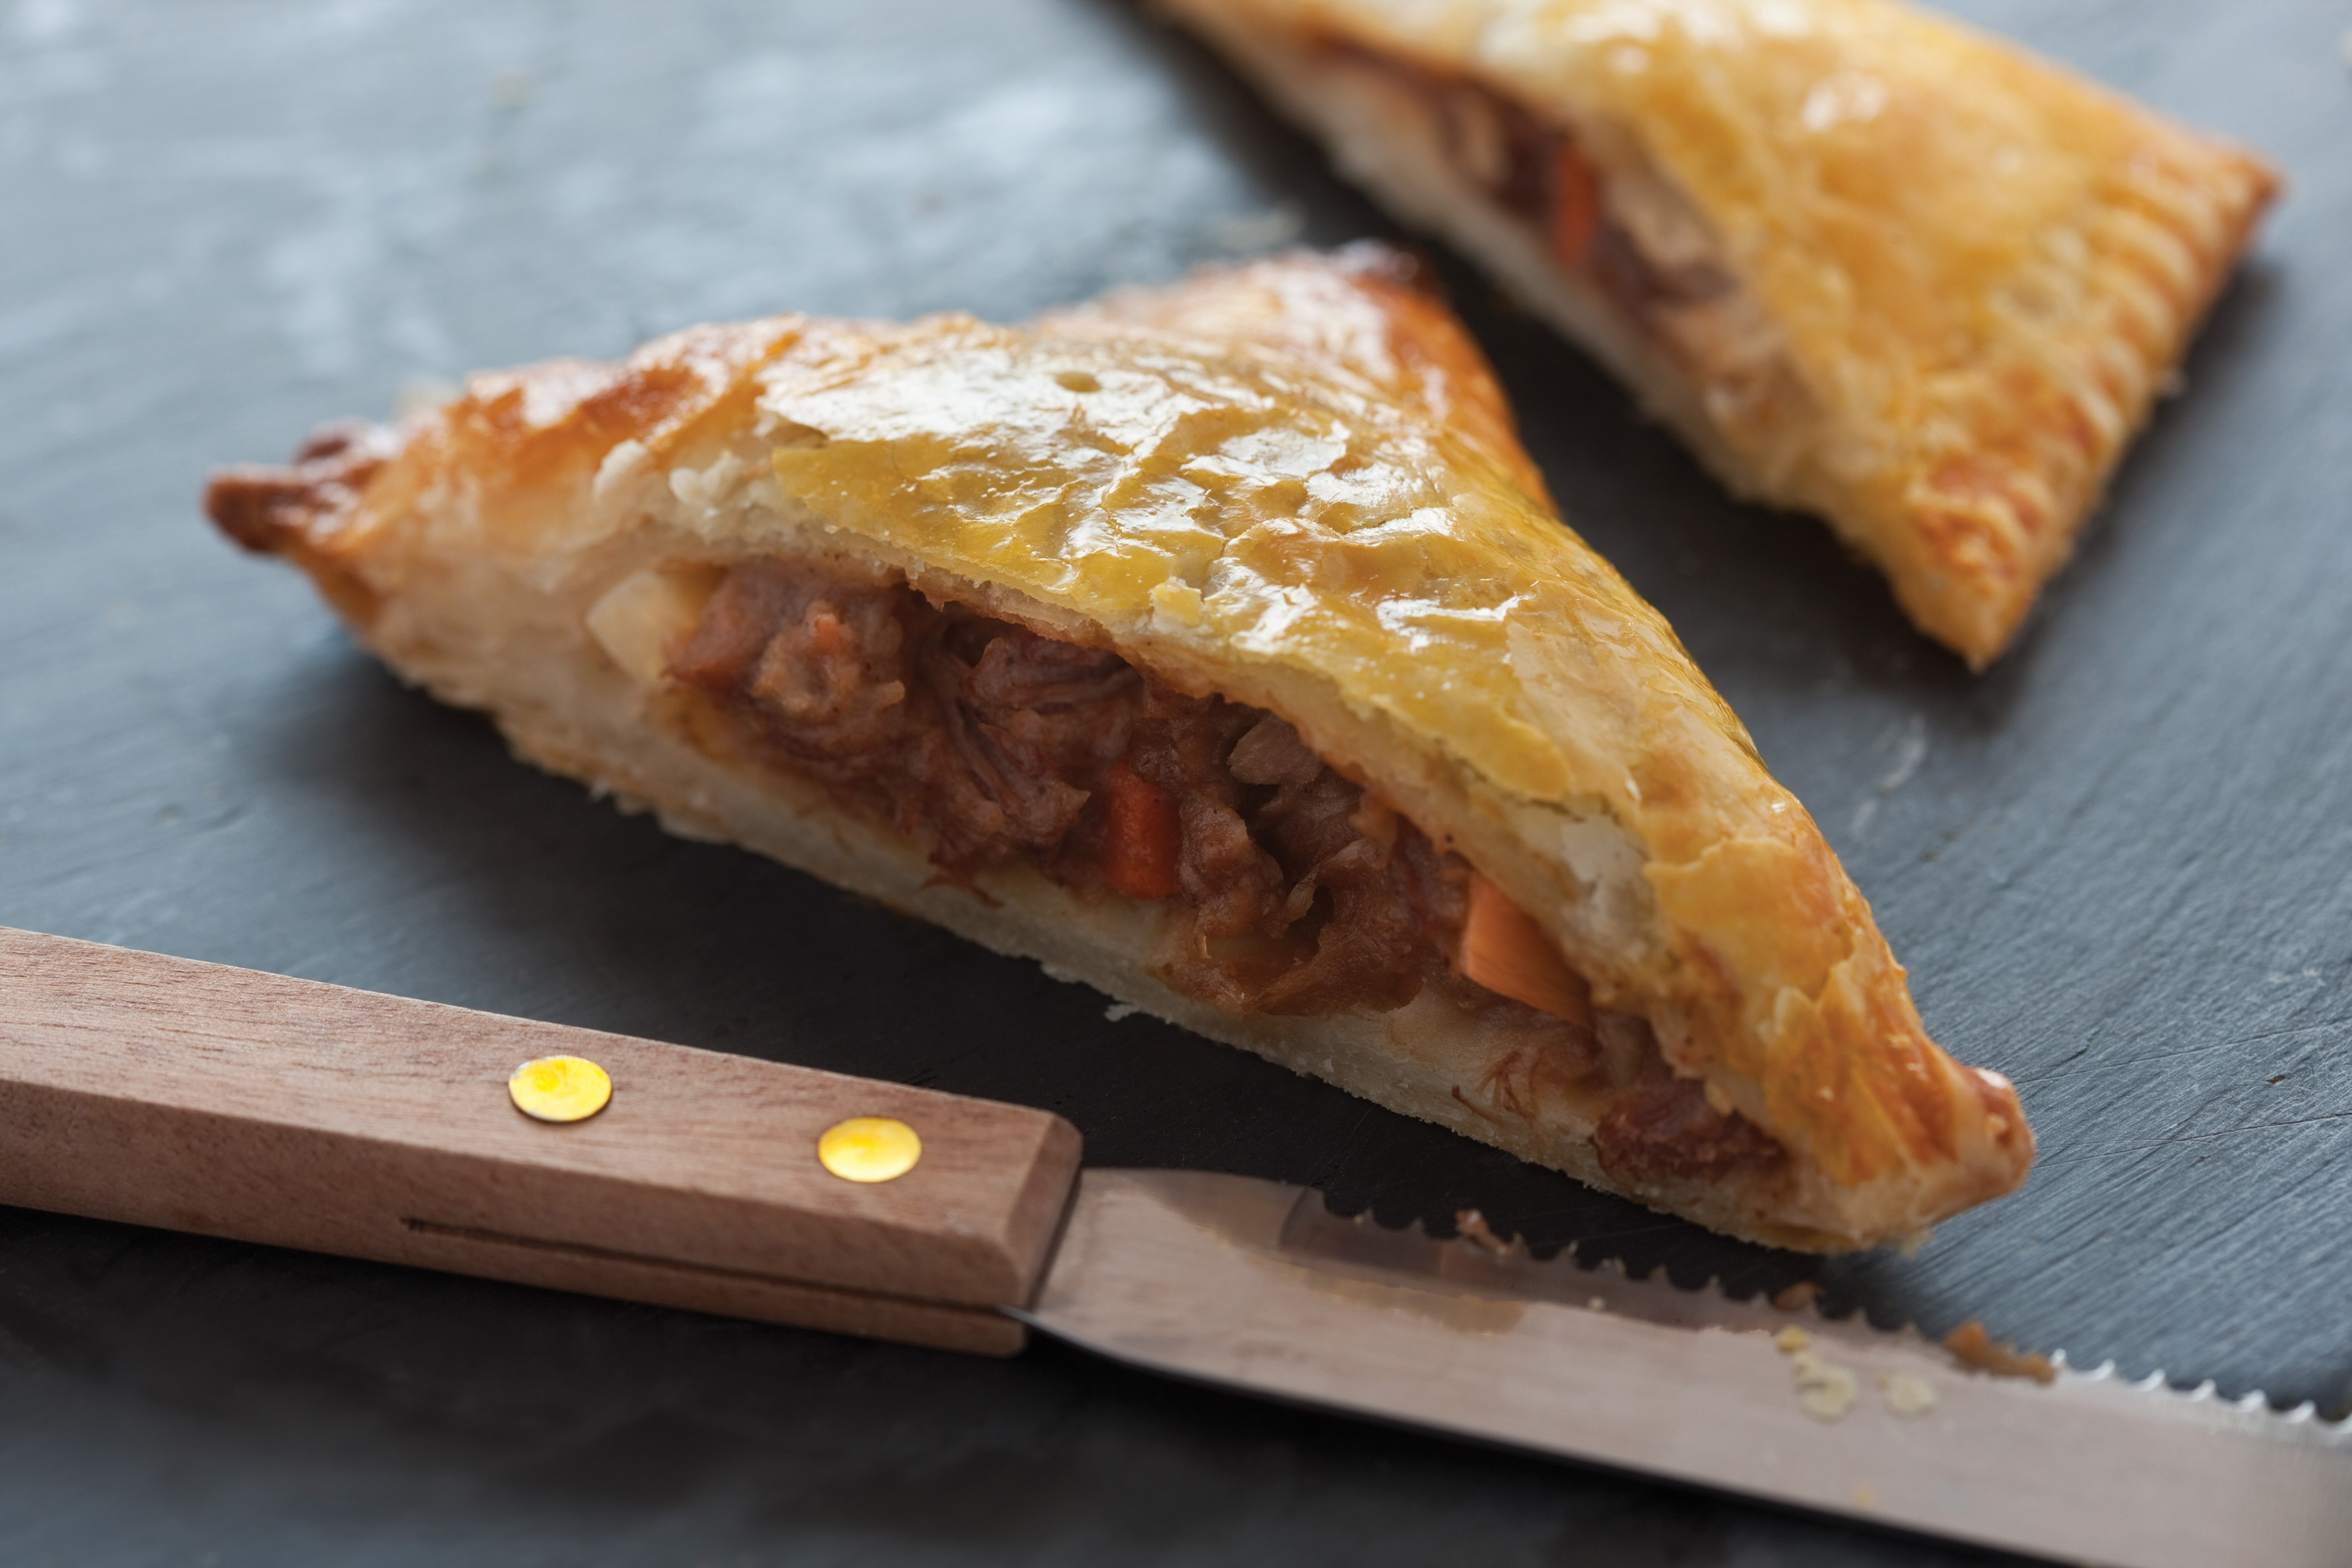 mfm-taste-tests-new-gluten-free-pies-and-pastries_27481